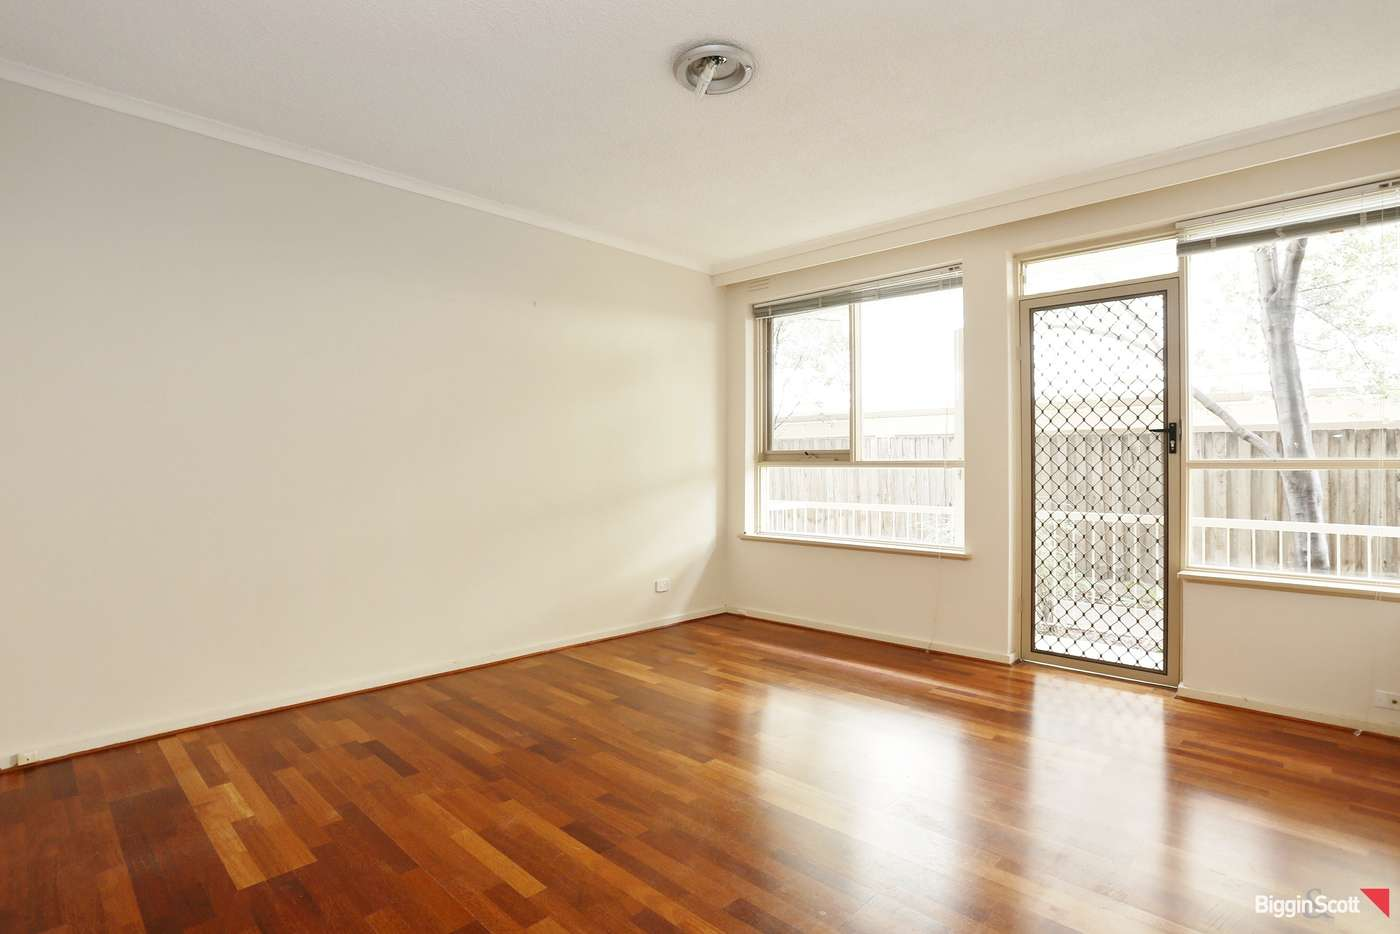 Main view of Homely apartment listing, 3/50 Sutherland Road, Armadale VIC 3143